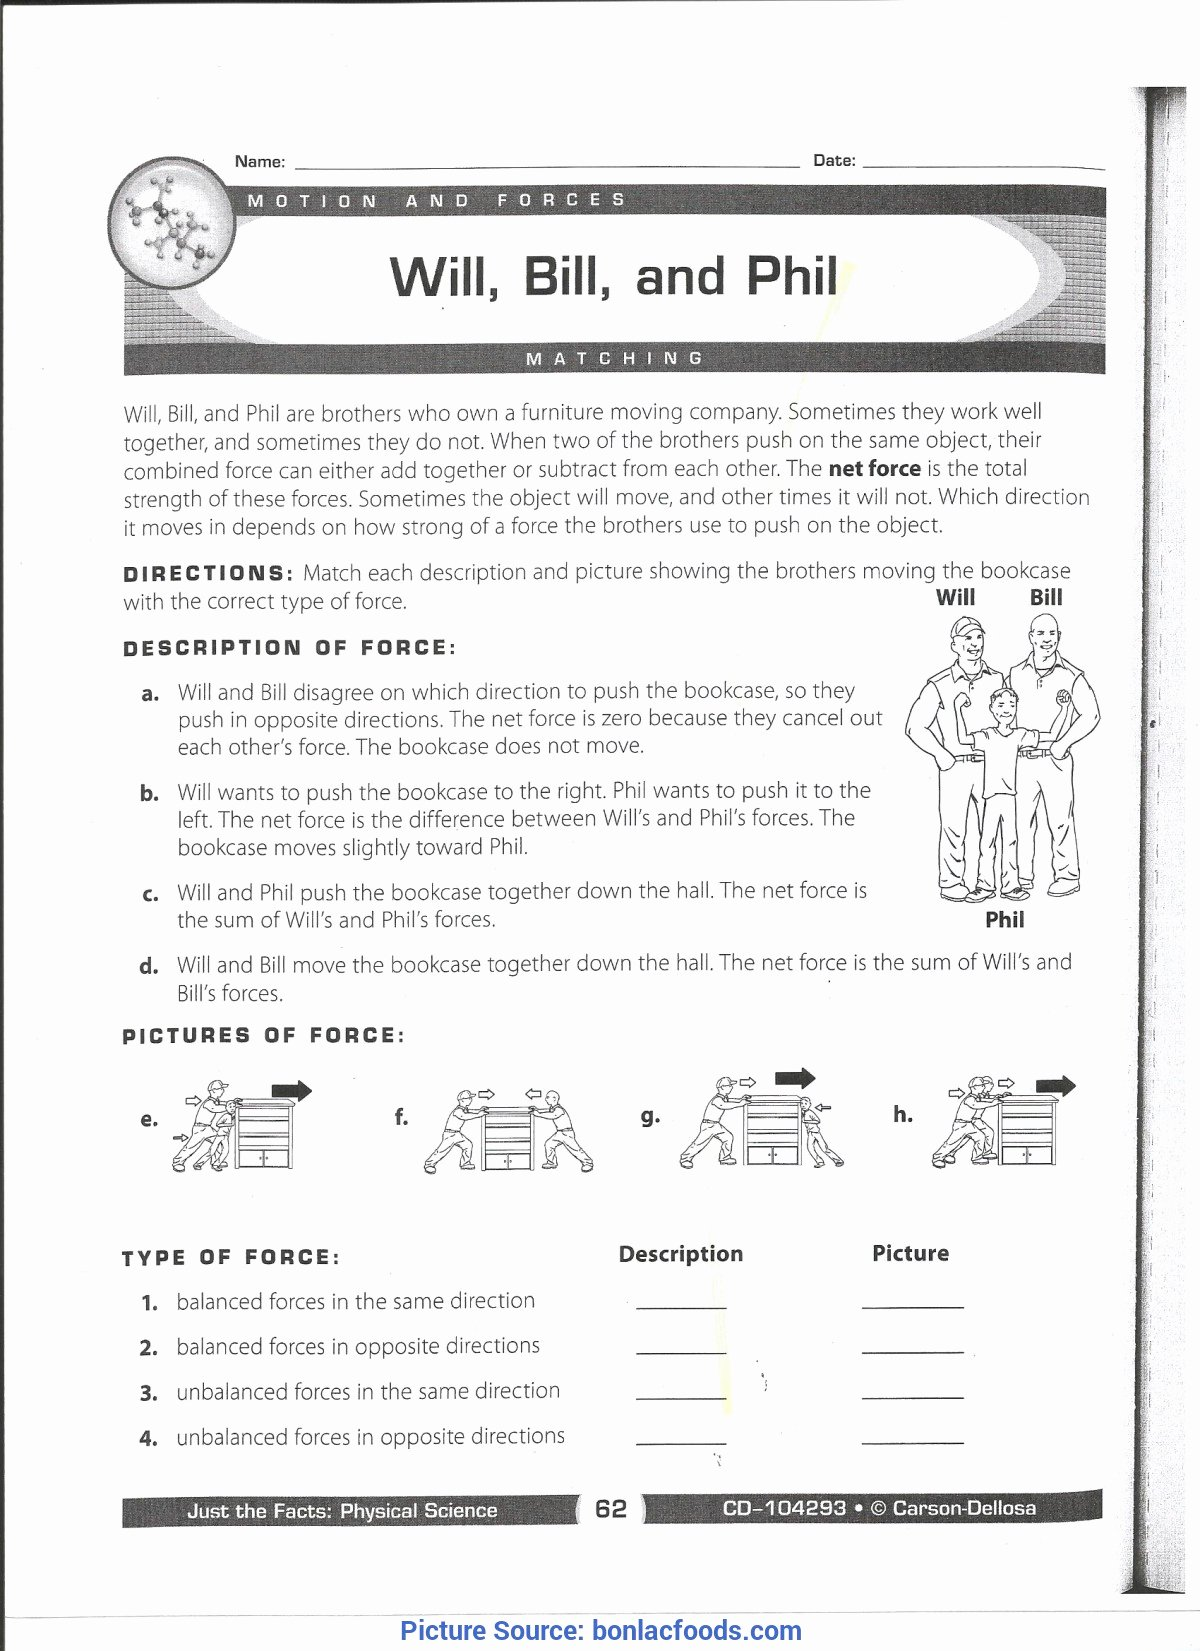 Force and Motion Printable Worksheets Inspirational Excellent 3rd Grade Lesson Plans force and Motion 5th